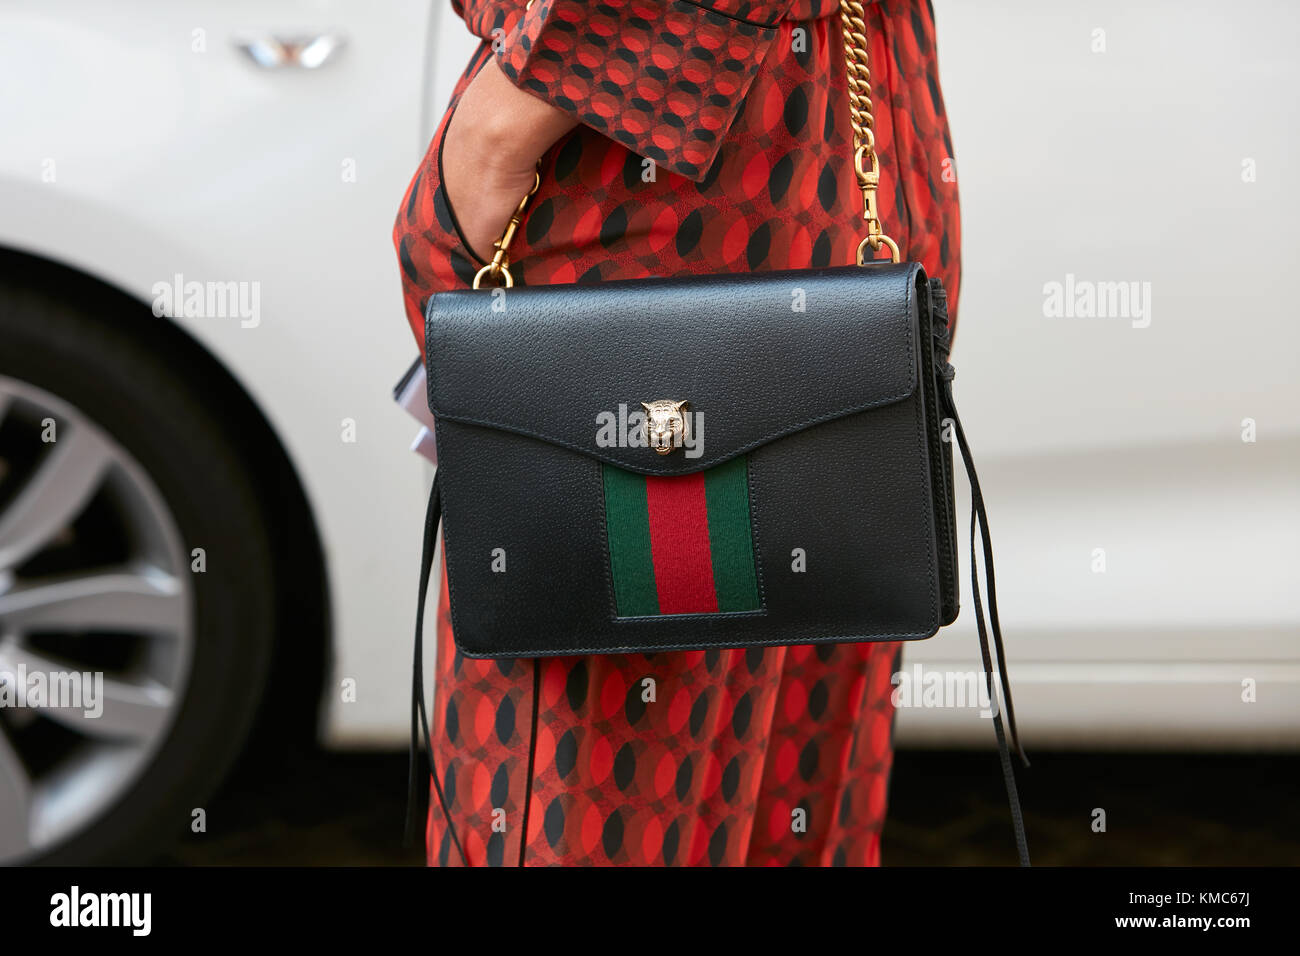 65d503f07bb4 MILAN - SEPTEMBER 23: Woman with black leather Gucci bag with golden lion  head and red dress before Antonio Marras fashion show, Milan Fashion Week st